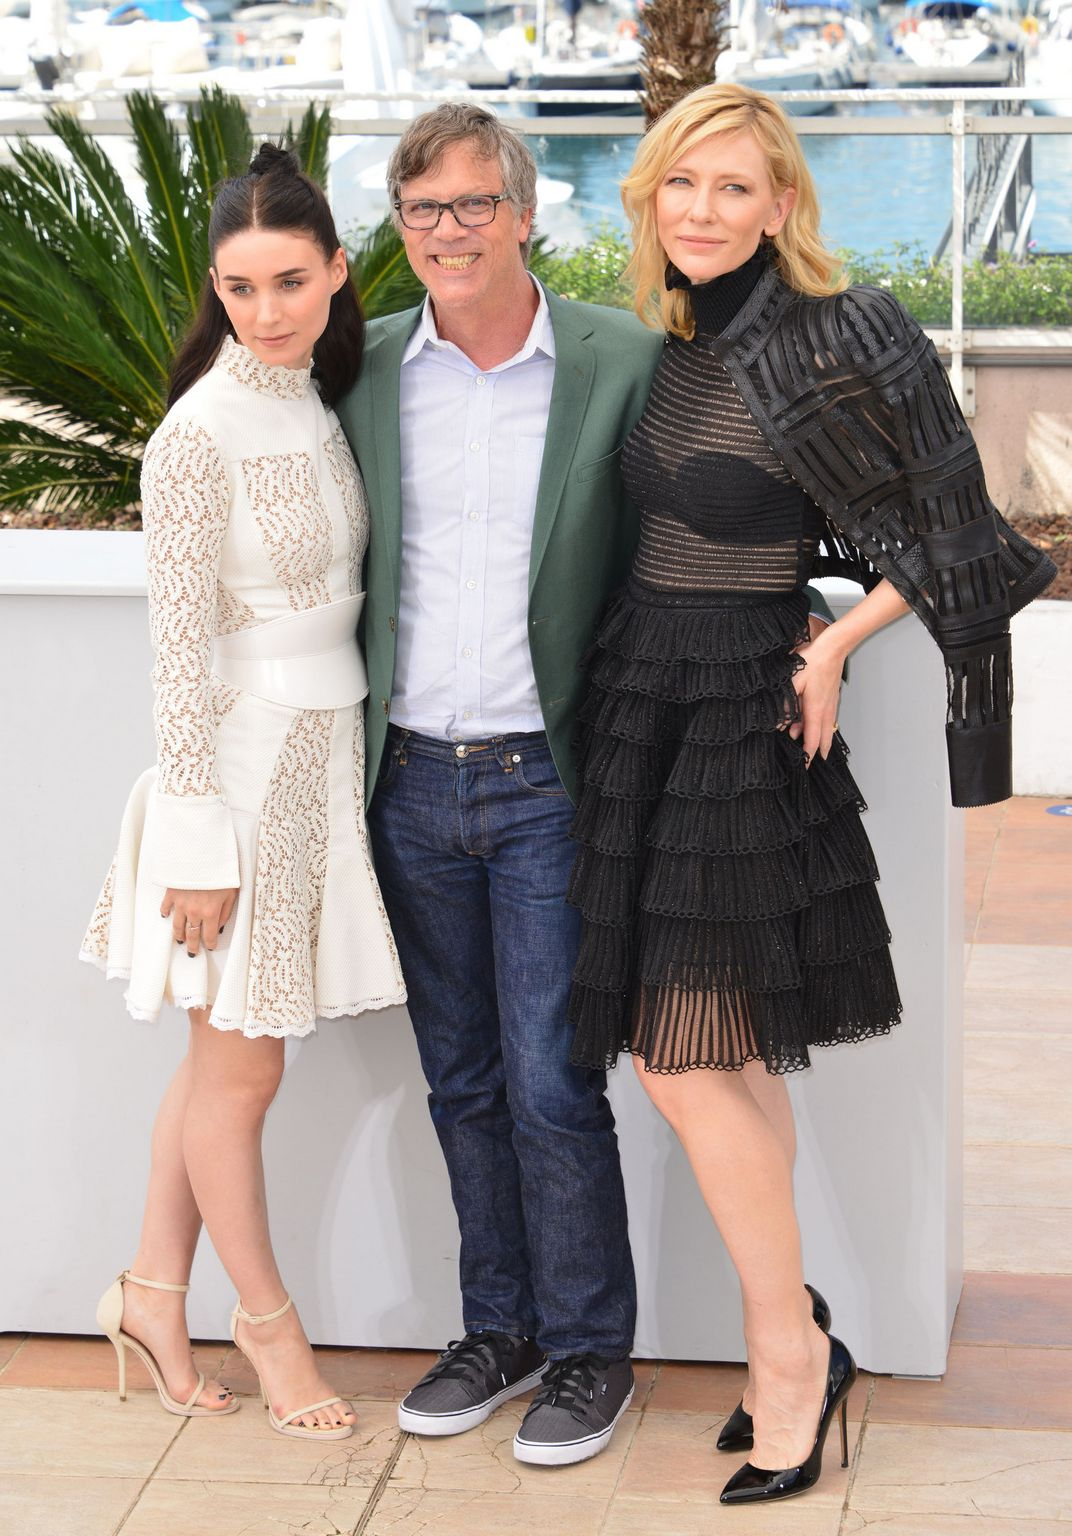 Cate Blanchett and Rooney Mara at Annual Cannes Film Festival Carol photocall-1